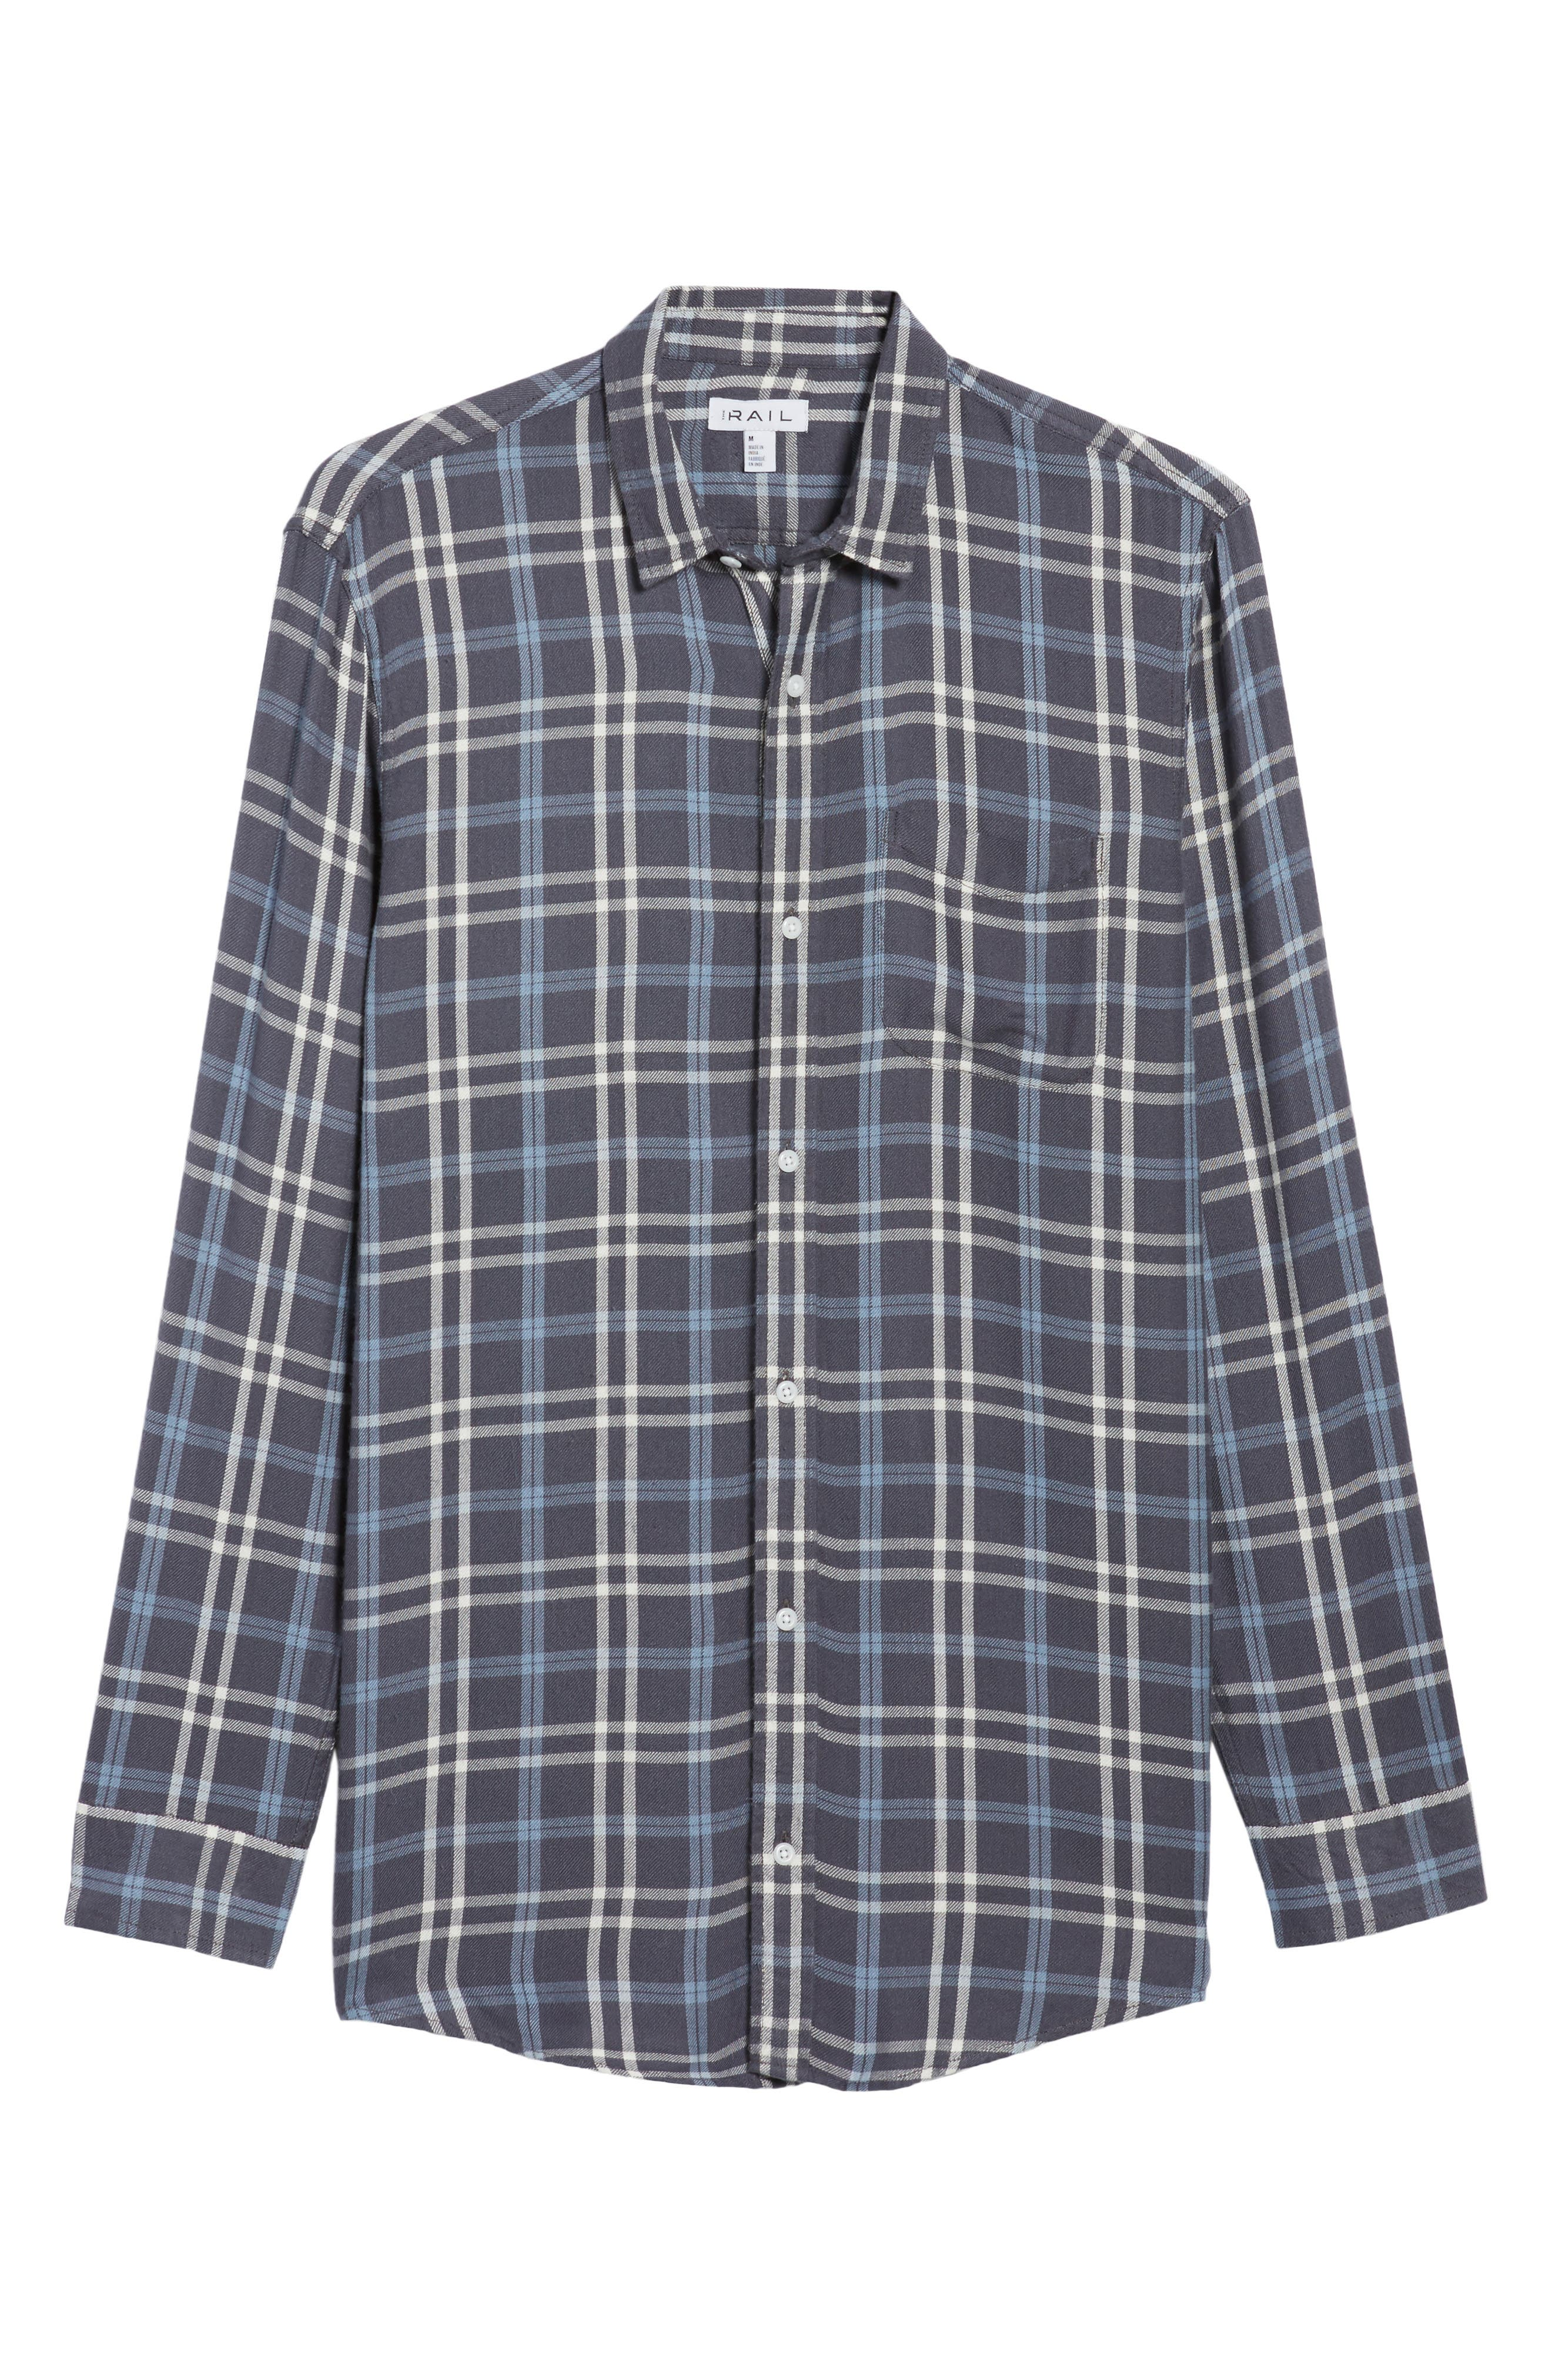 Yarn Dyed Plaid Shirt,                             Alternate thumbnail 6, color,                             Blue Grisaille Plaid